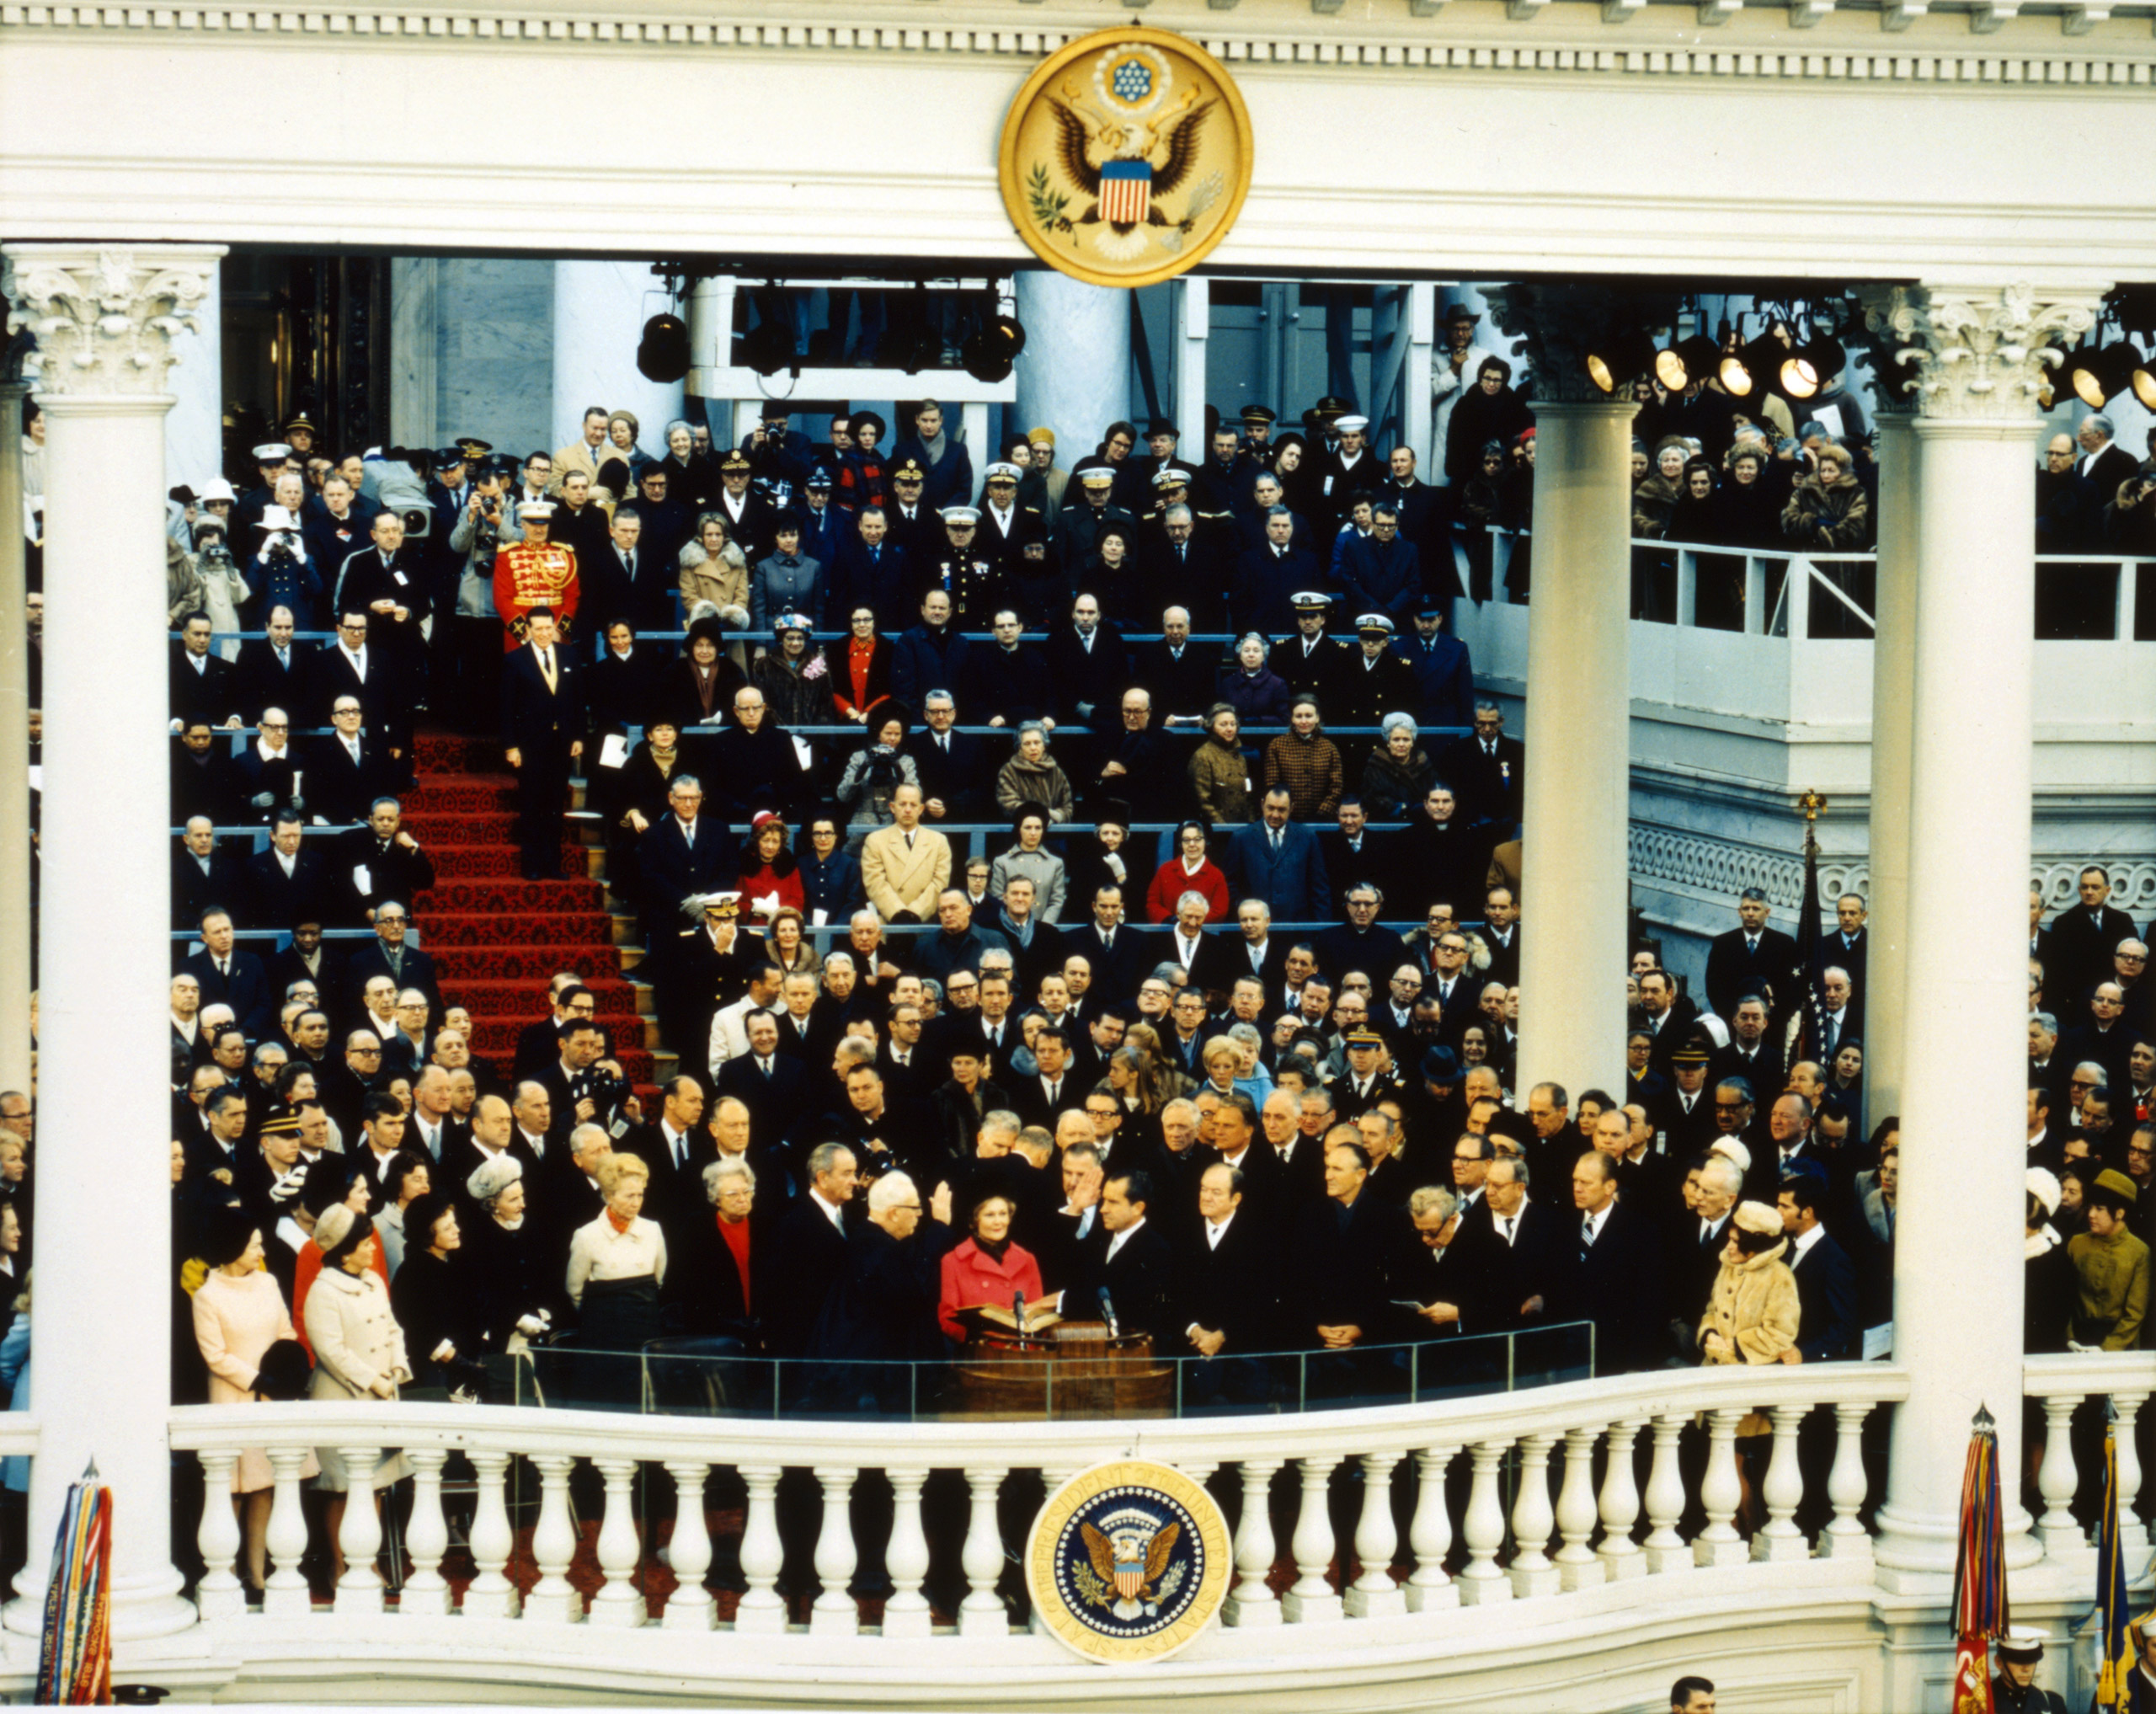 Chief Justice Earl Warren administering the oath of office to Richard M. Nixon on the east portico of the U.S. Capitol, January 20, 1969.